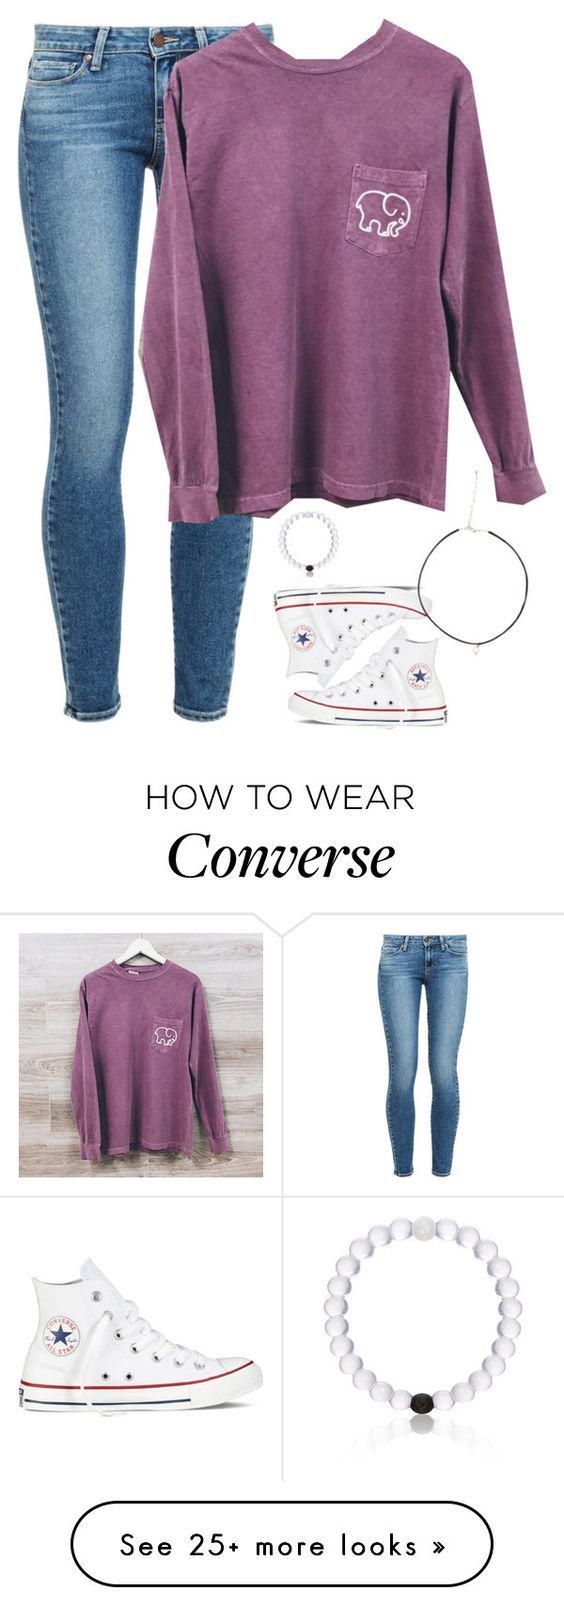 """""""Want this shirt!!~ how's the new setup?"""" by meljordrum on Polyvore featuring Converse, Paige Denim and Everest:"""